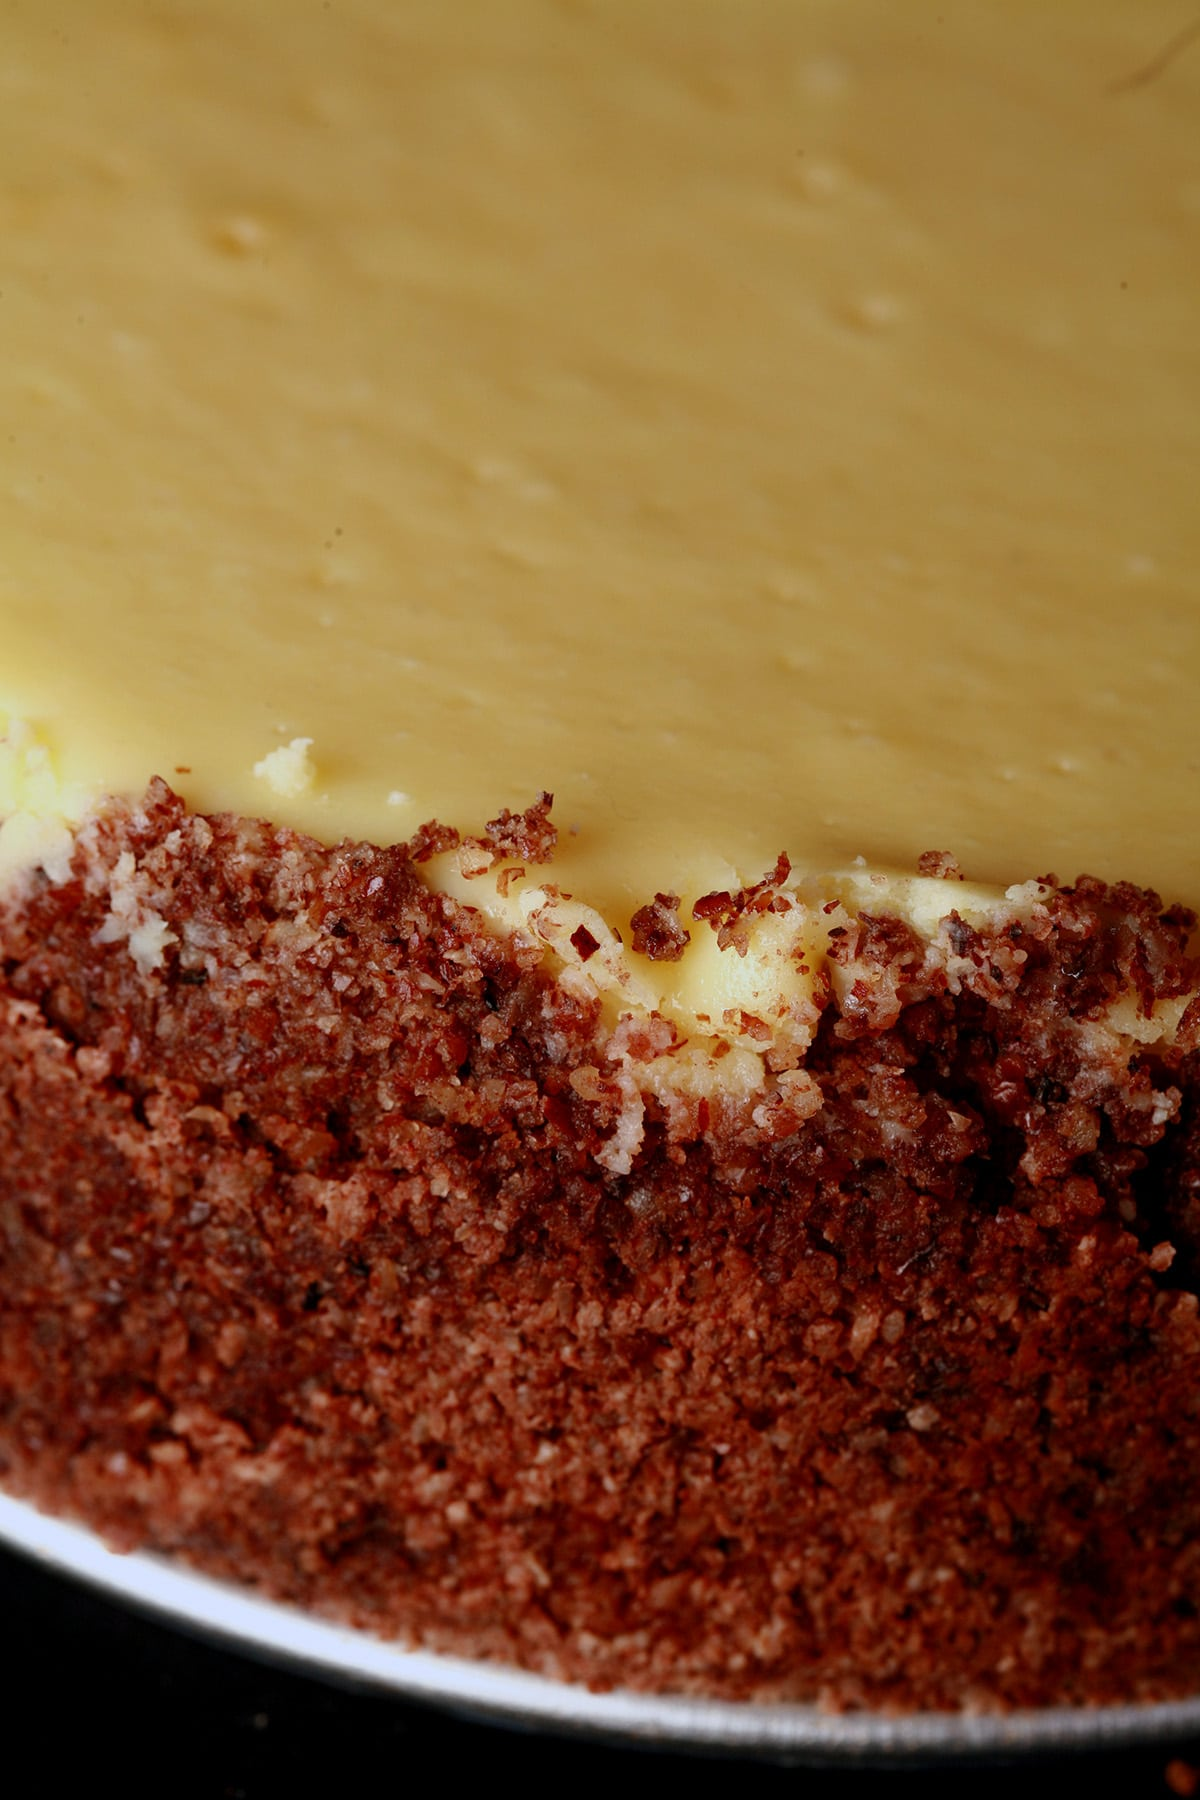 A close up view of a small cheesecake with a pecan crumb crust.